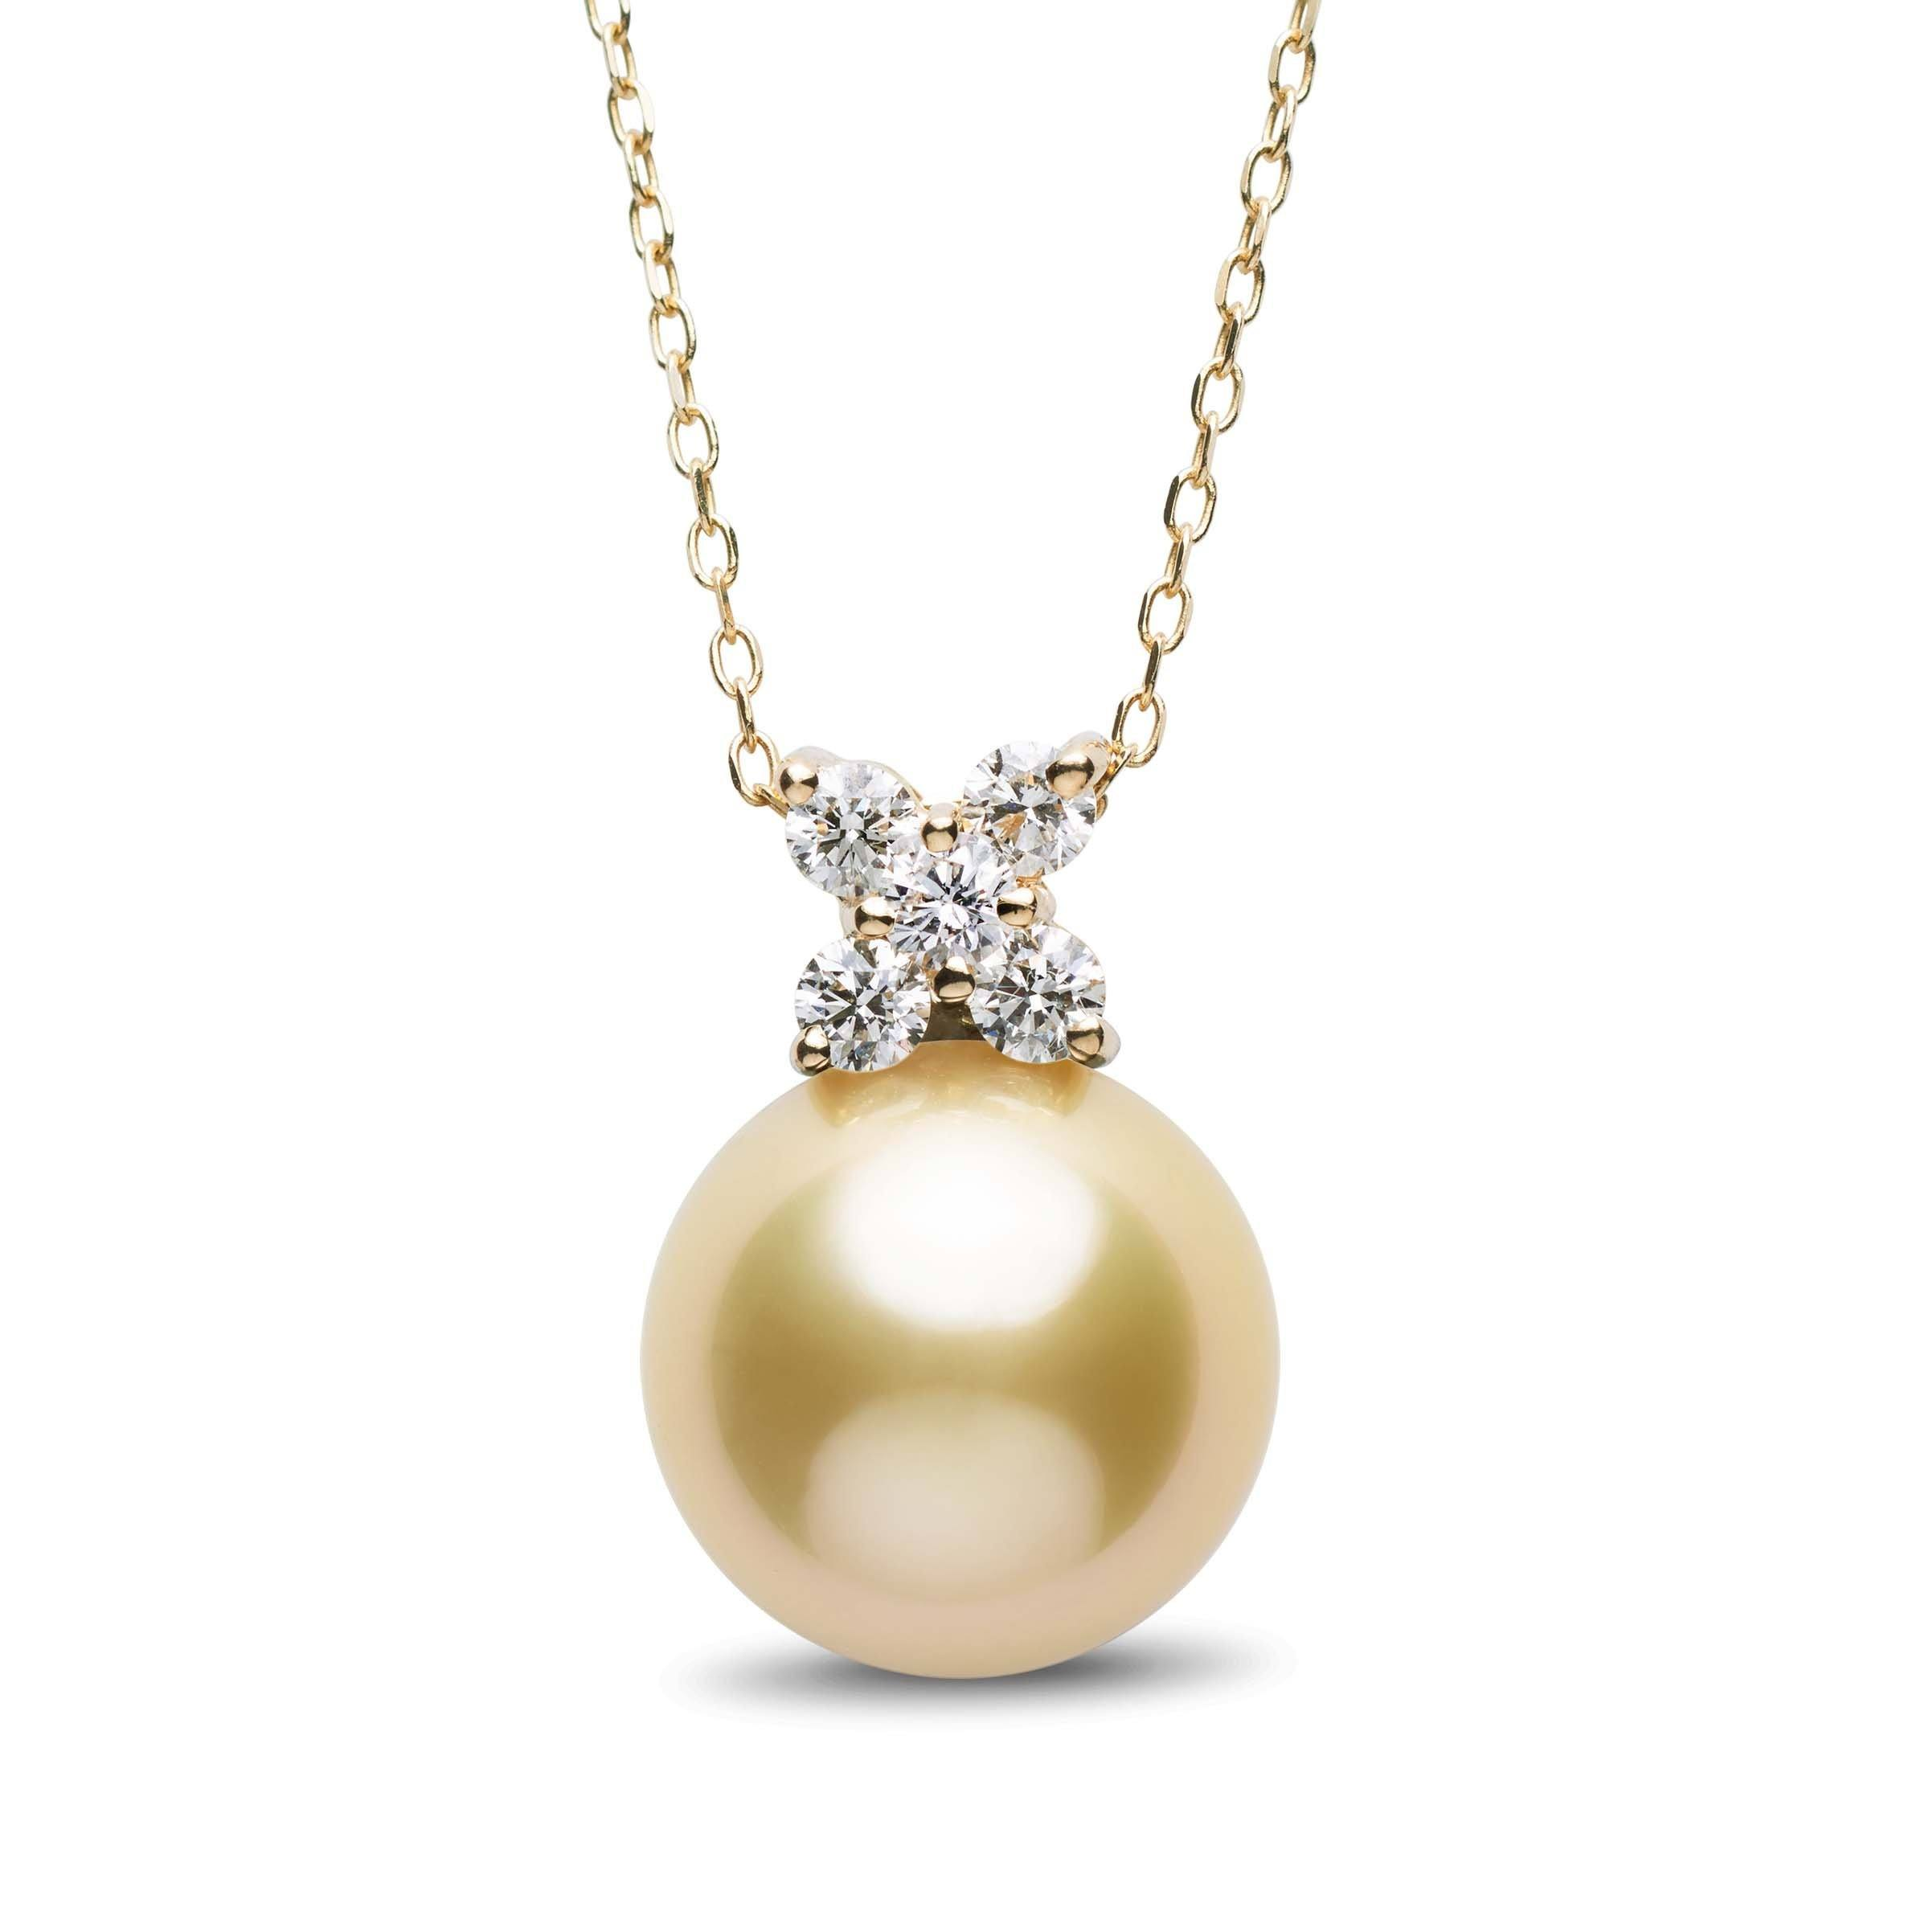 Kiss Collection 12.0-13.0 mm Golden South Sea Pearl and Diamond Pendant